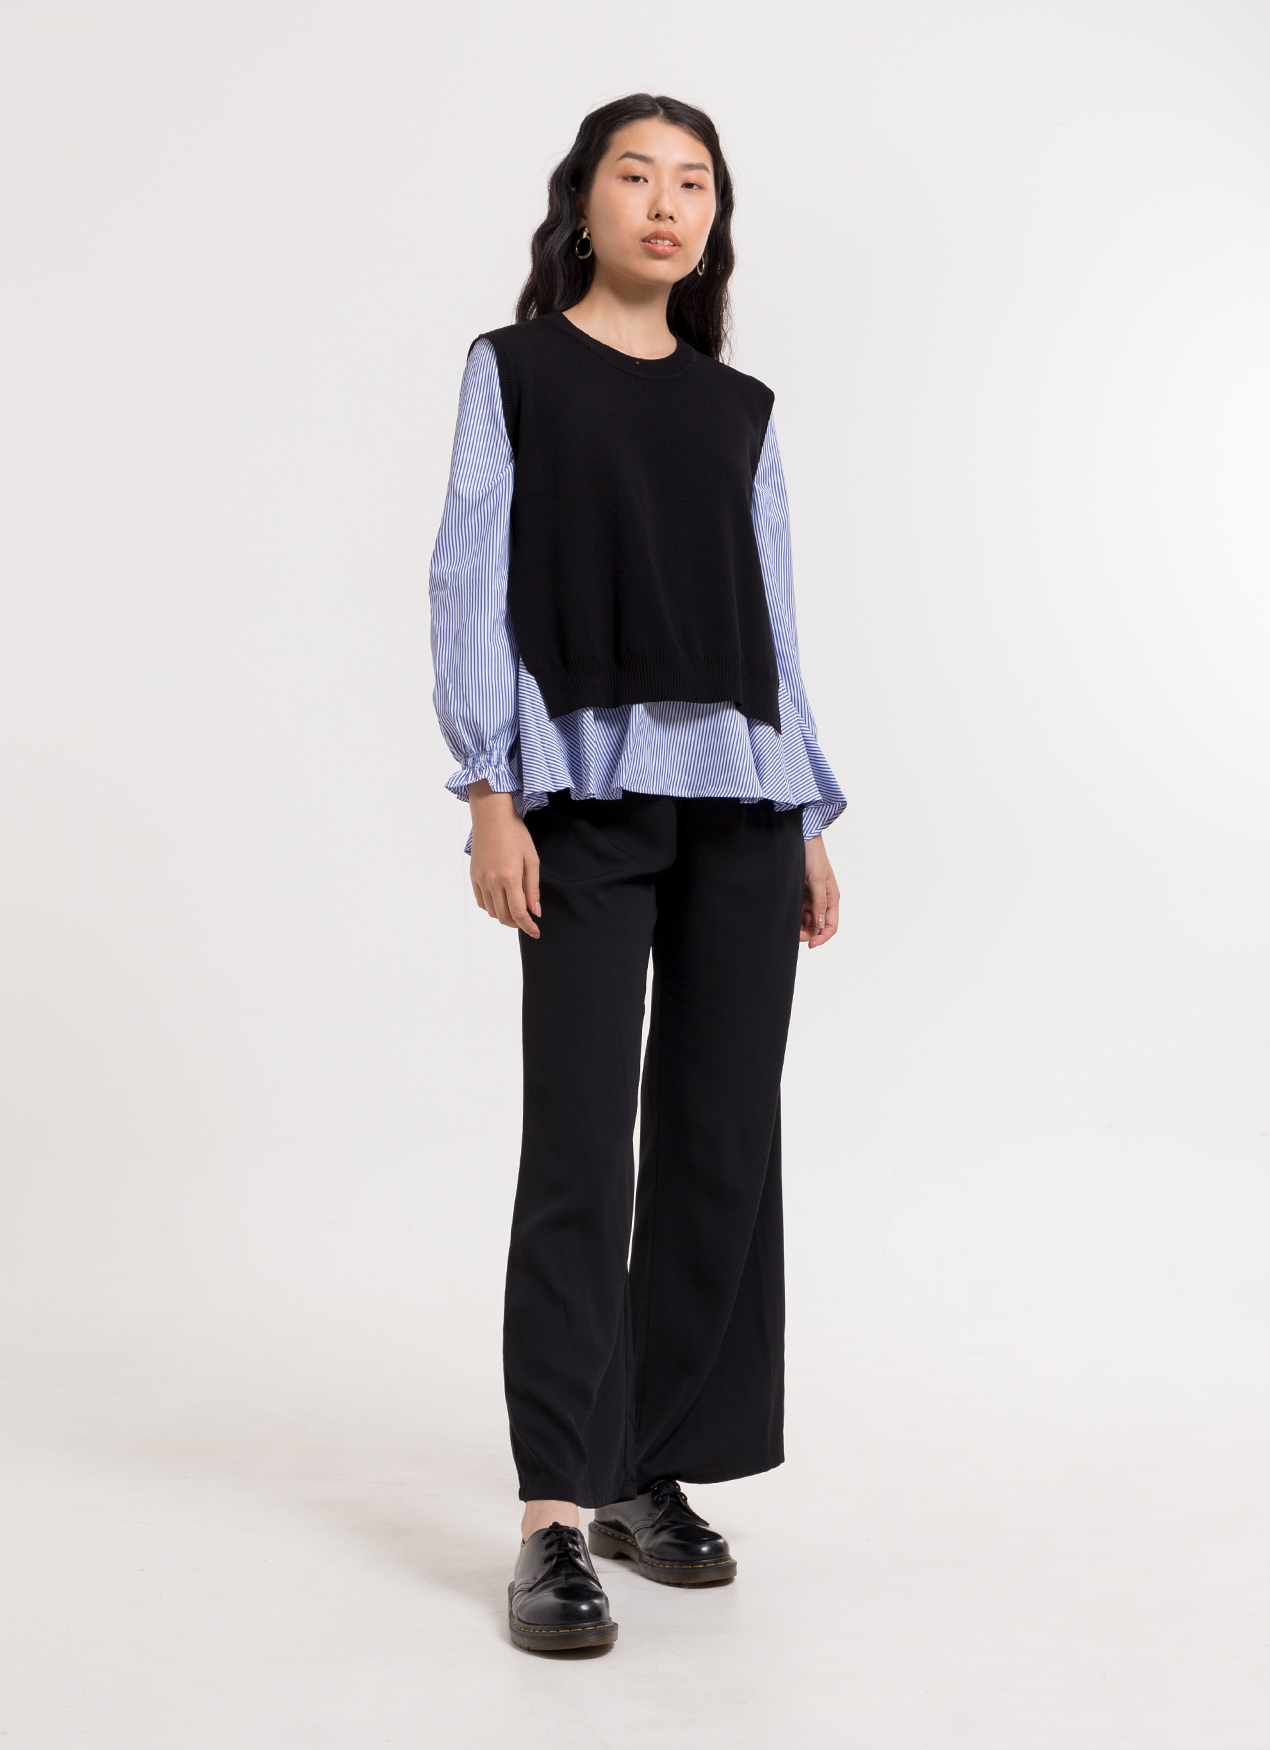 BOWN Chailla Top - Black